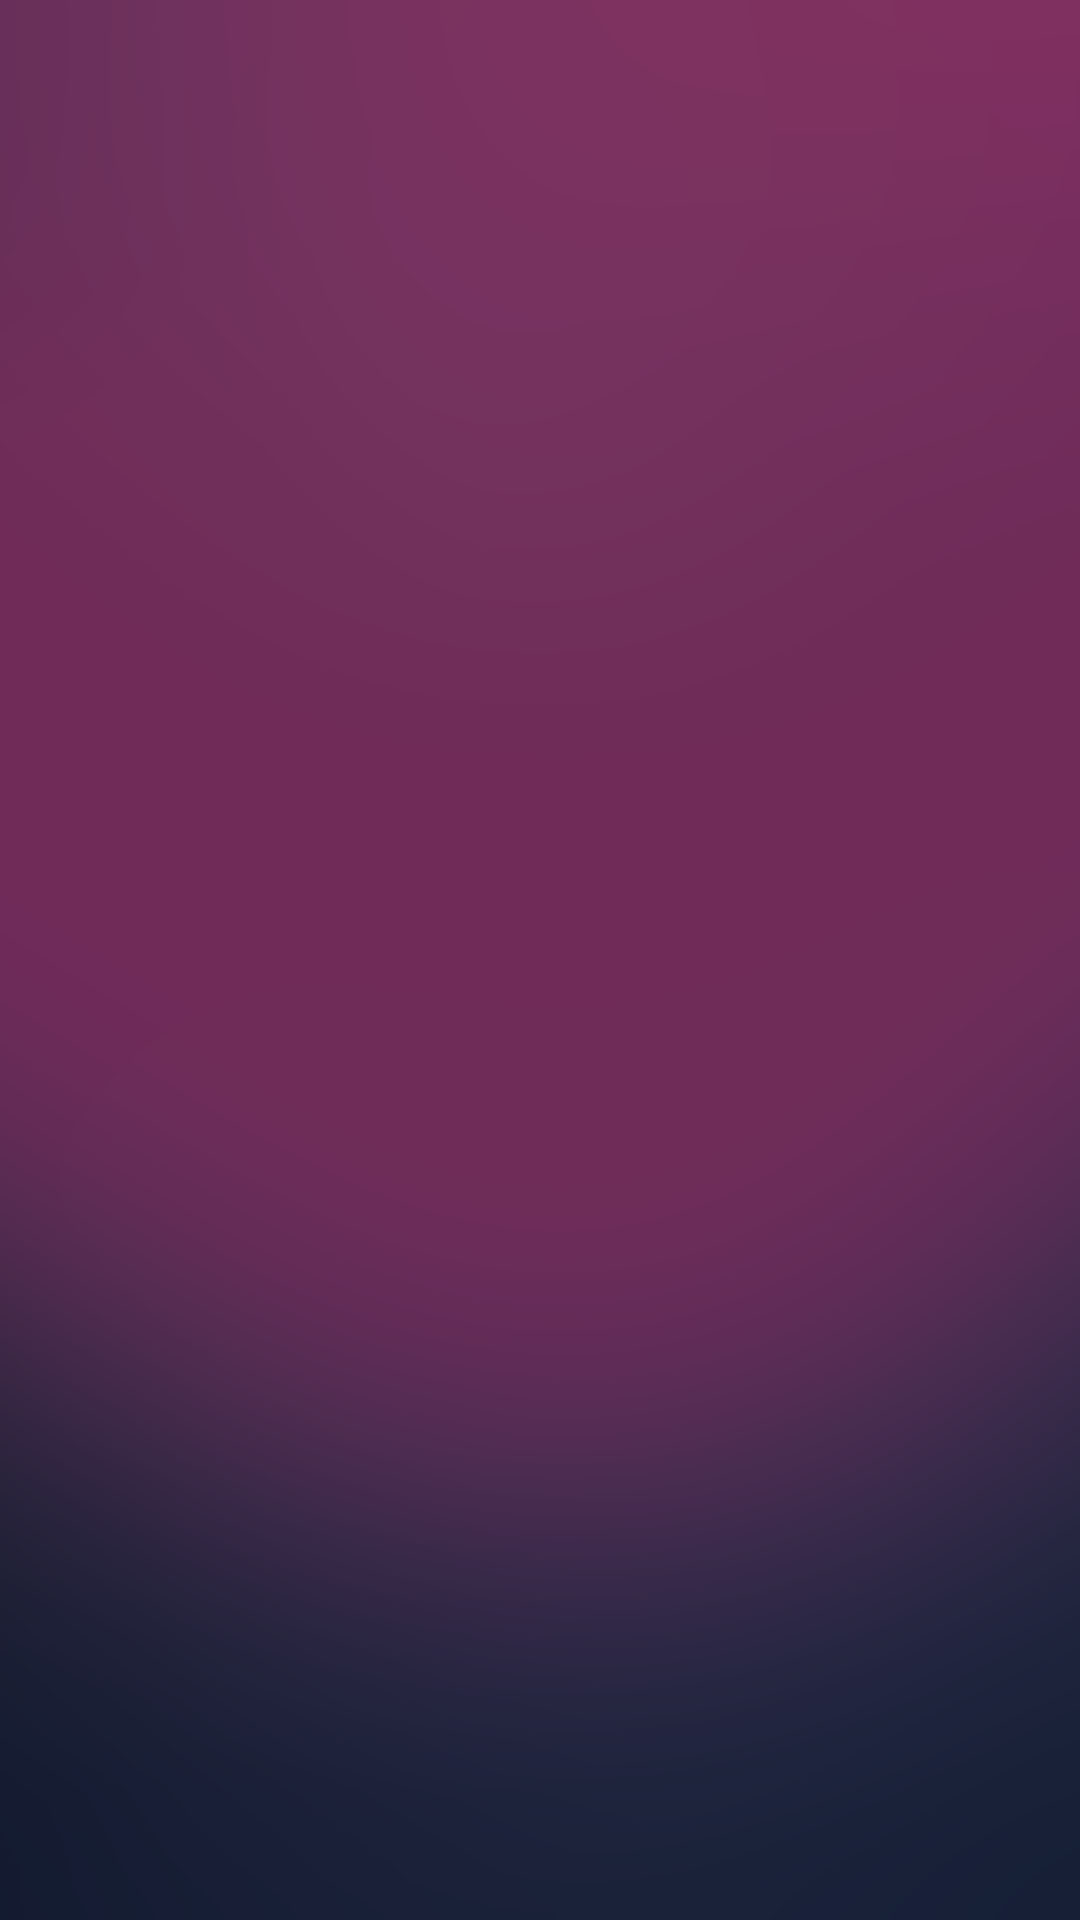 1080x1920 Simple Purple Gradient Samsung Android Wallpaper free download